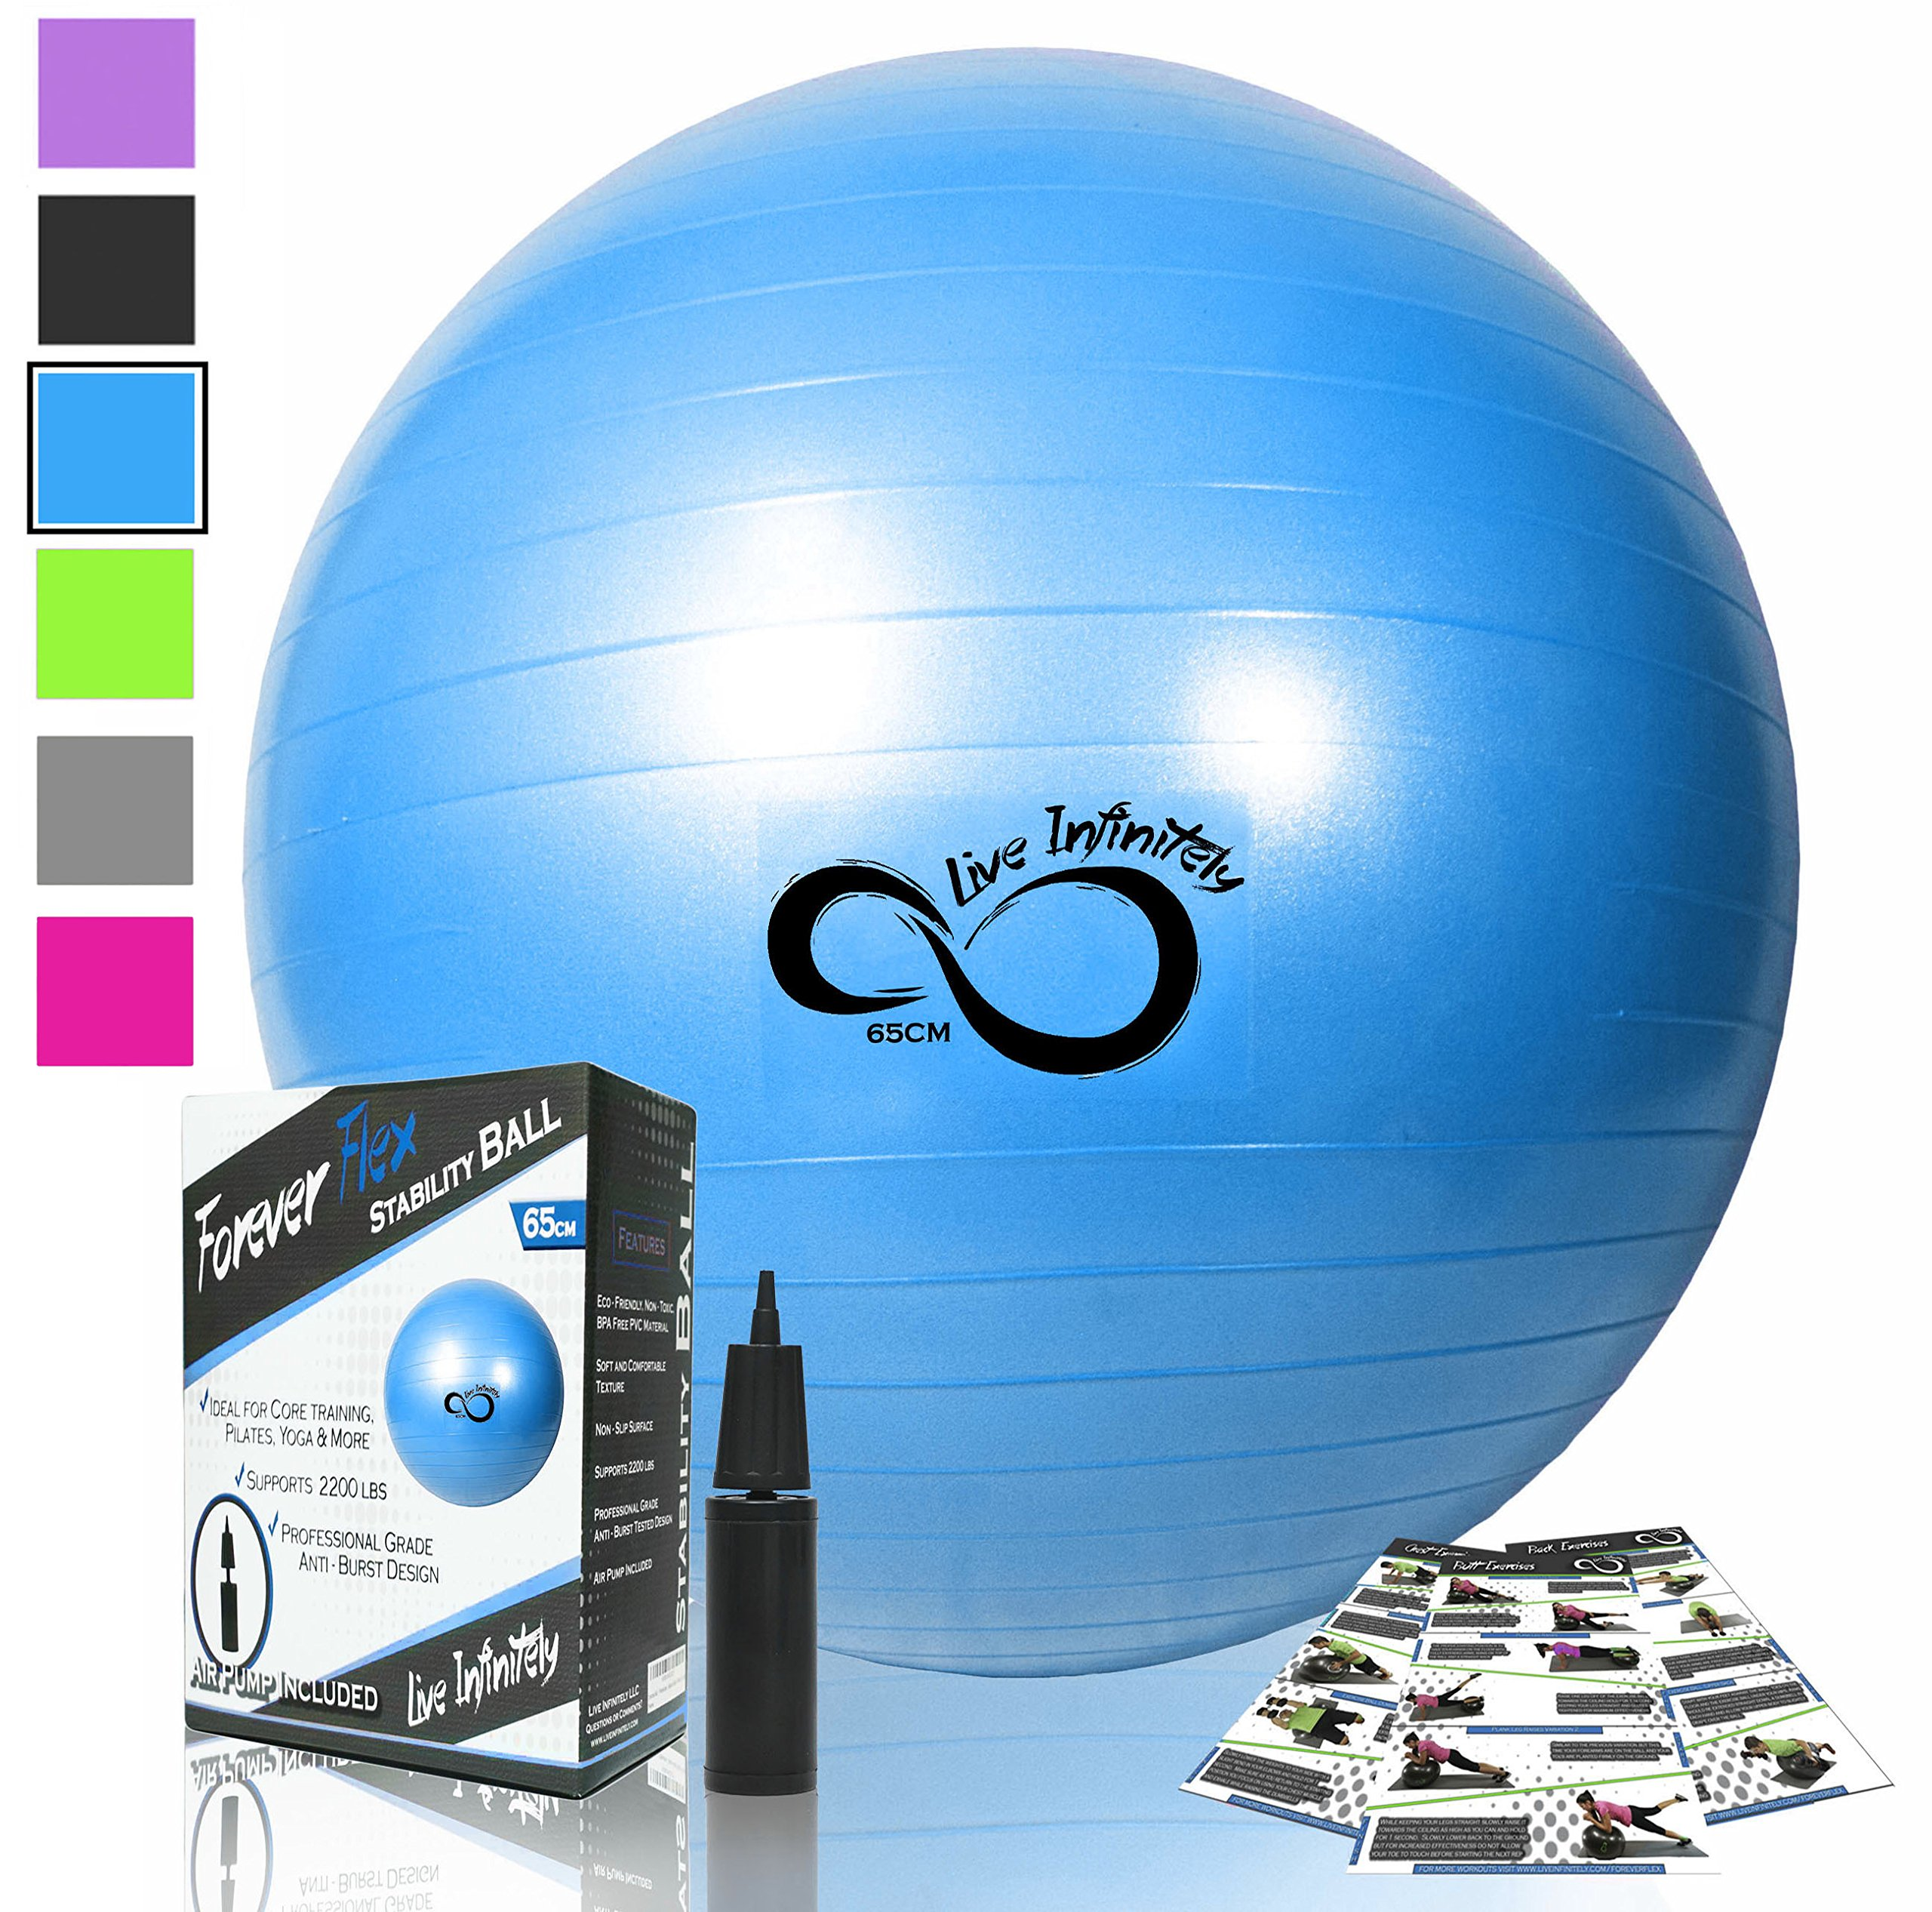 Live Infinitely Exercise Ball (55cm-95cm) Extra Thick Professional Grade Balance & Stability Ball- Anti Burst Tested Supports 2200lbs- Includes Hand Pump & Workout Guide Access Blue 85cm